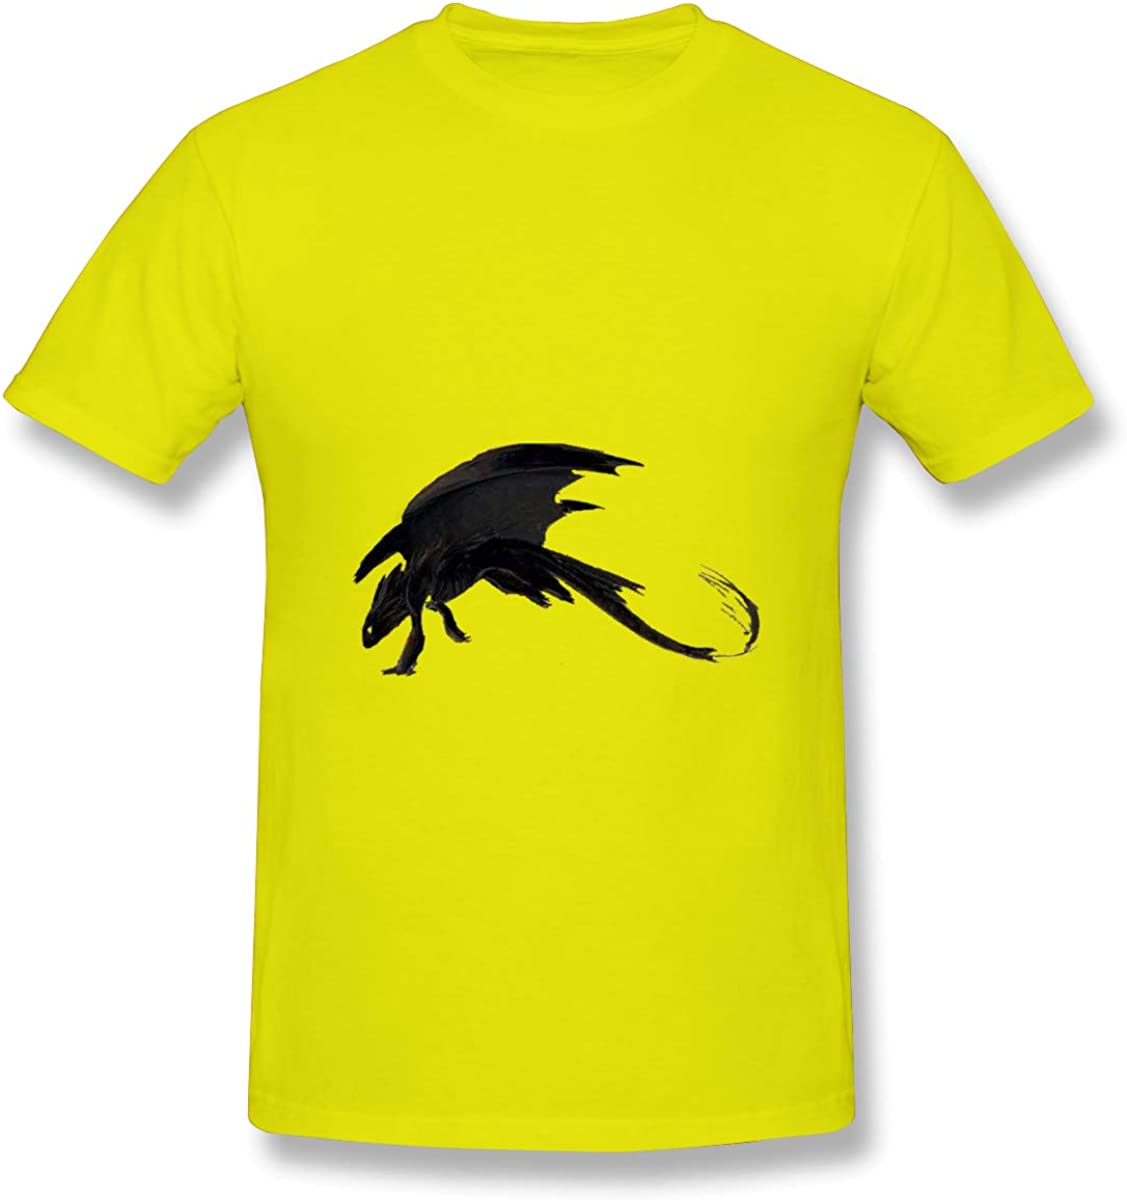 Zhenzhan Mens Hand-Painted Black Dragon Casual T Shirts Short Sleeve Athletic Tees Tops